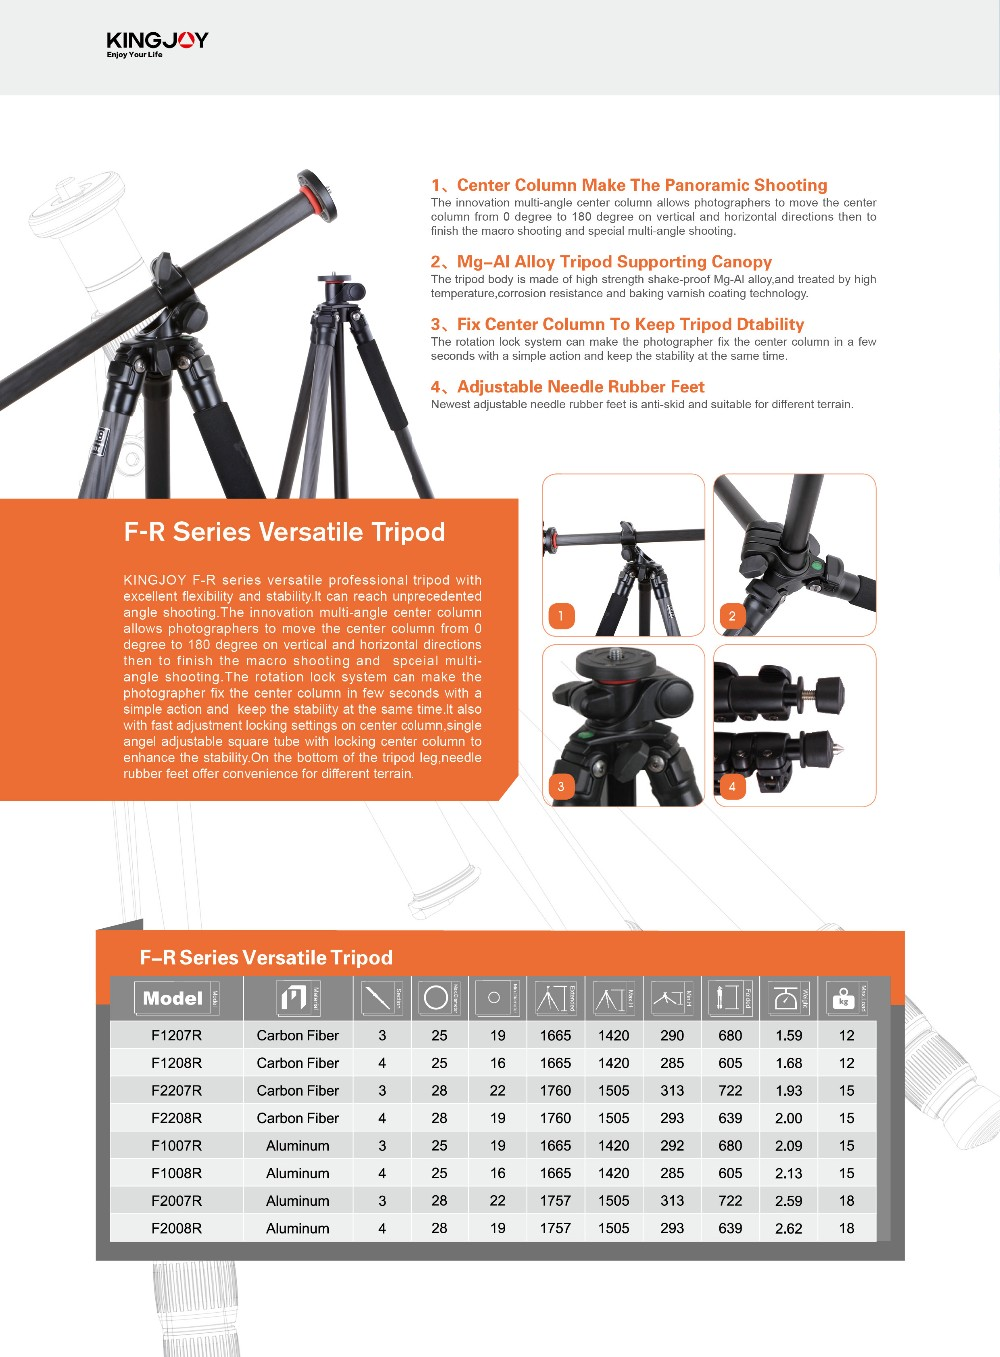 Kingjoy 4 section carbon fiber professionalTransverse column tripod with level bubble for dslr photo F1208R